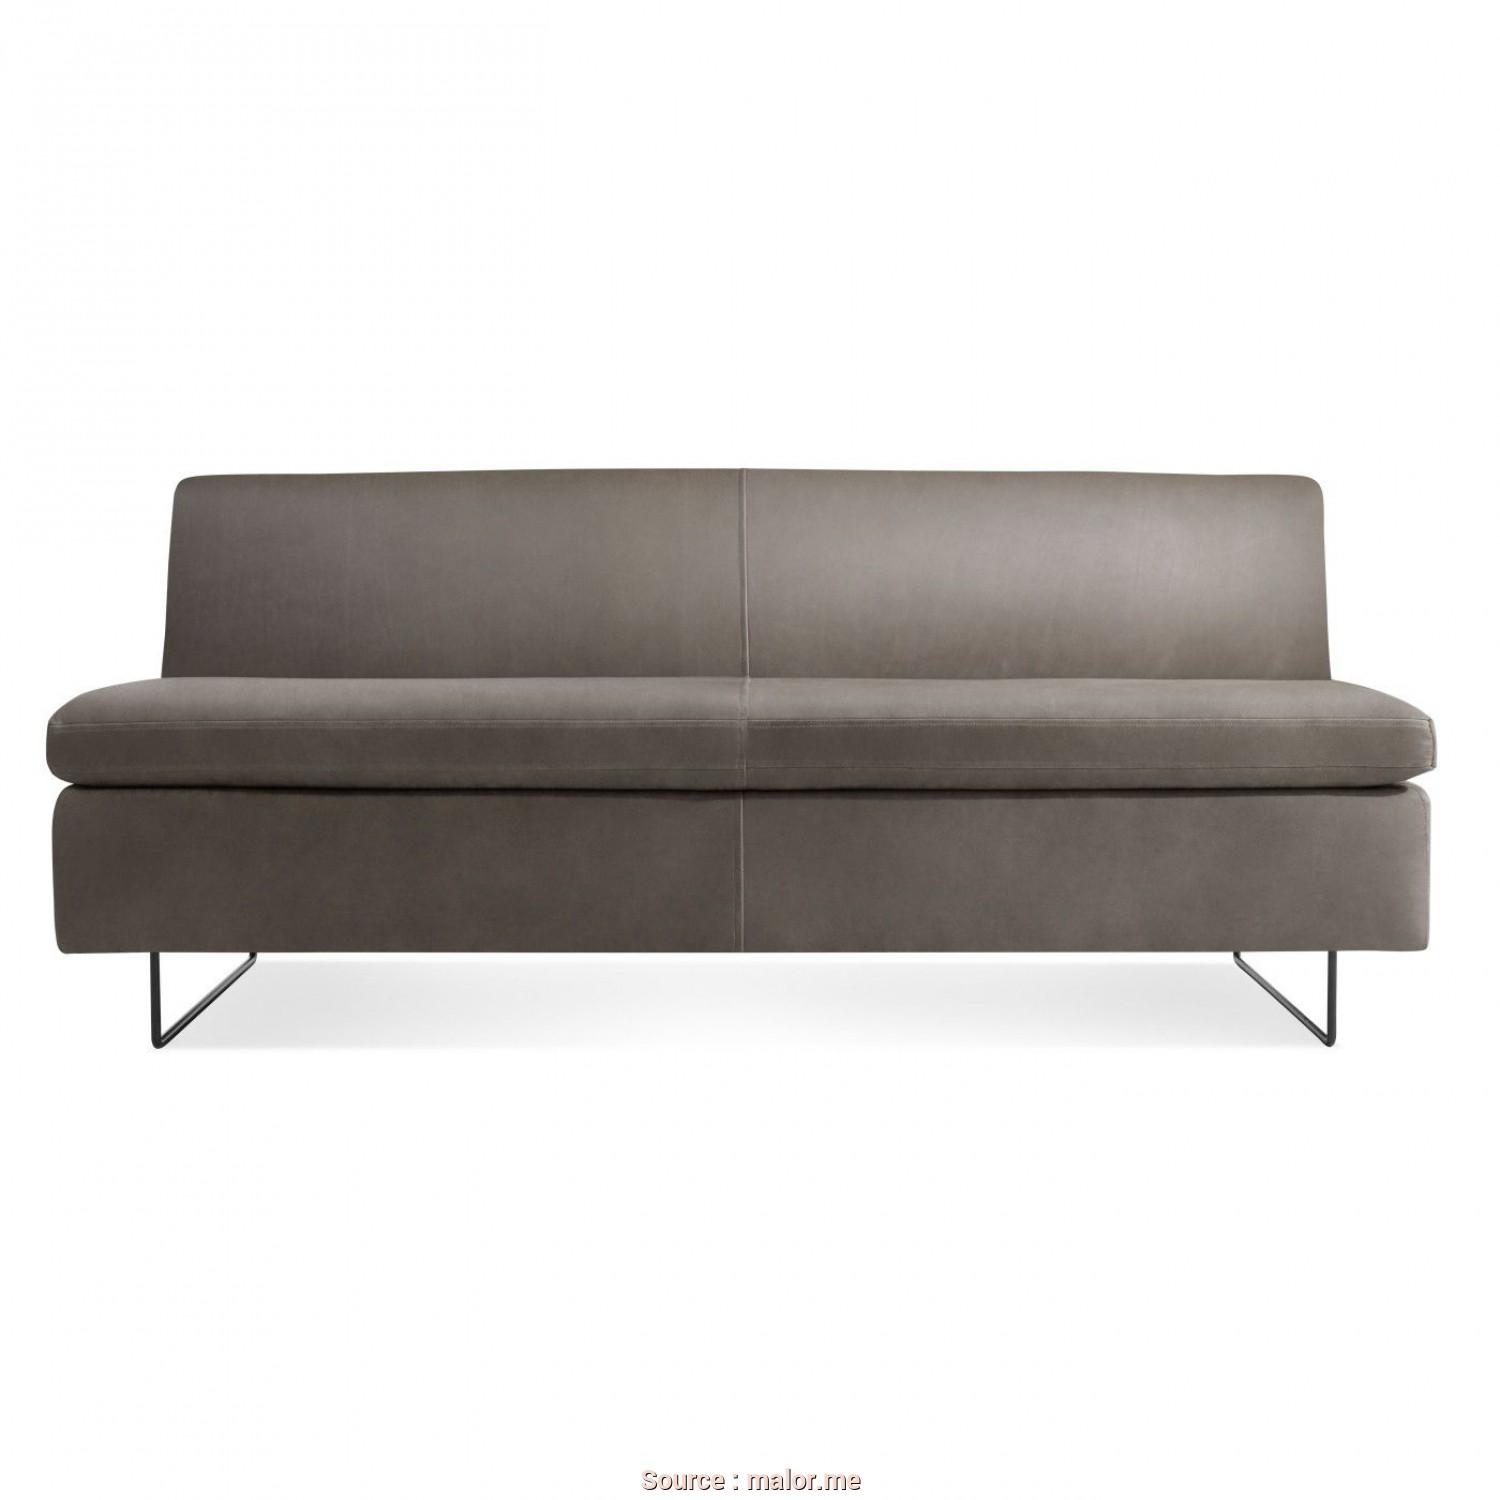 Divano, Posti Black Friday, Eccellente Full Size Of Divani Black Friday Clyde 67 Leather Sofa Otter Leather Divani Divani Black Friday